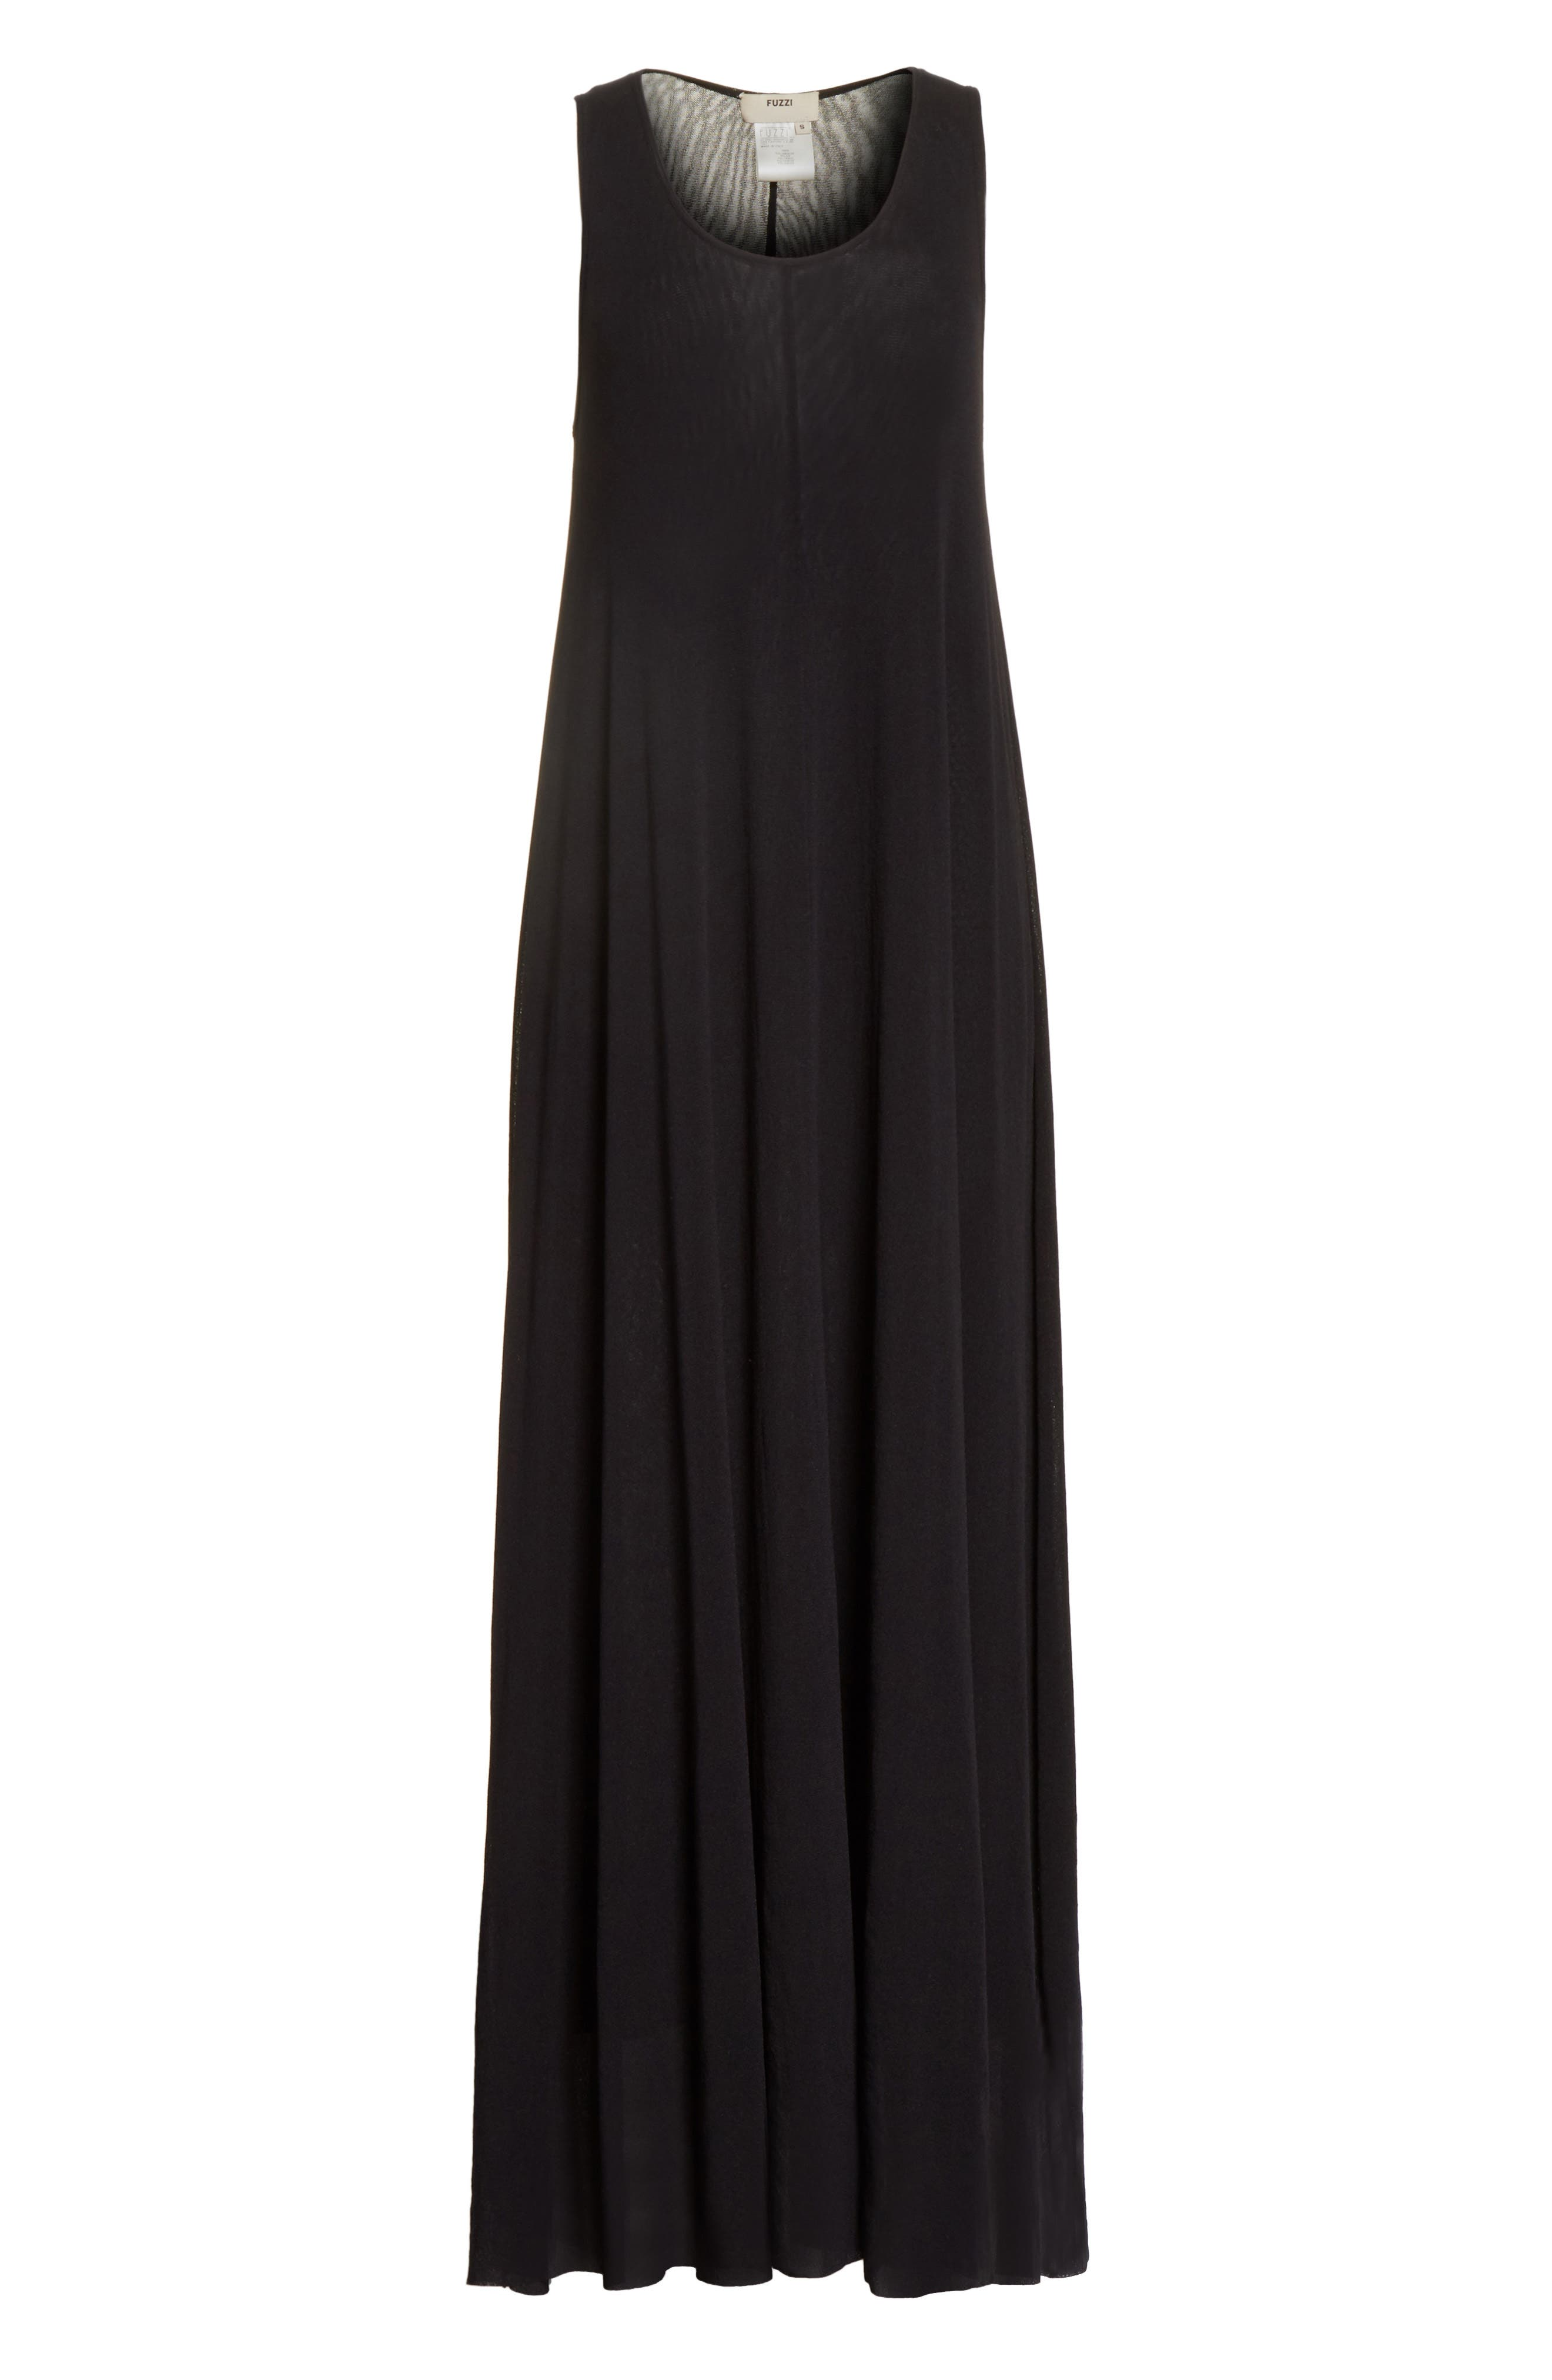 Belted Tulle Maxi Dress,                             Alternate thumbnail 11, color,